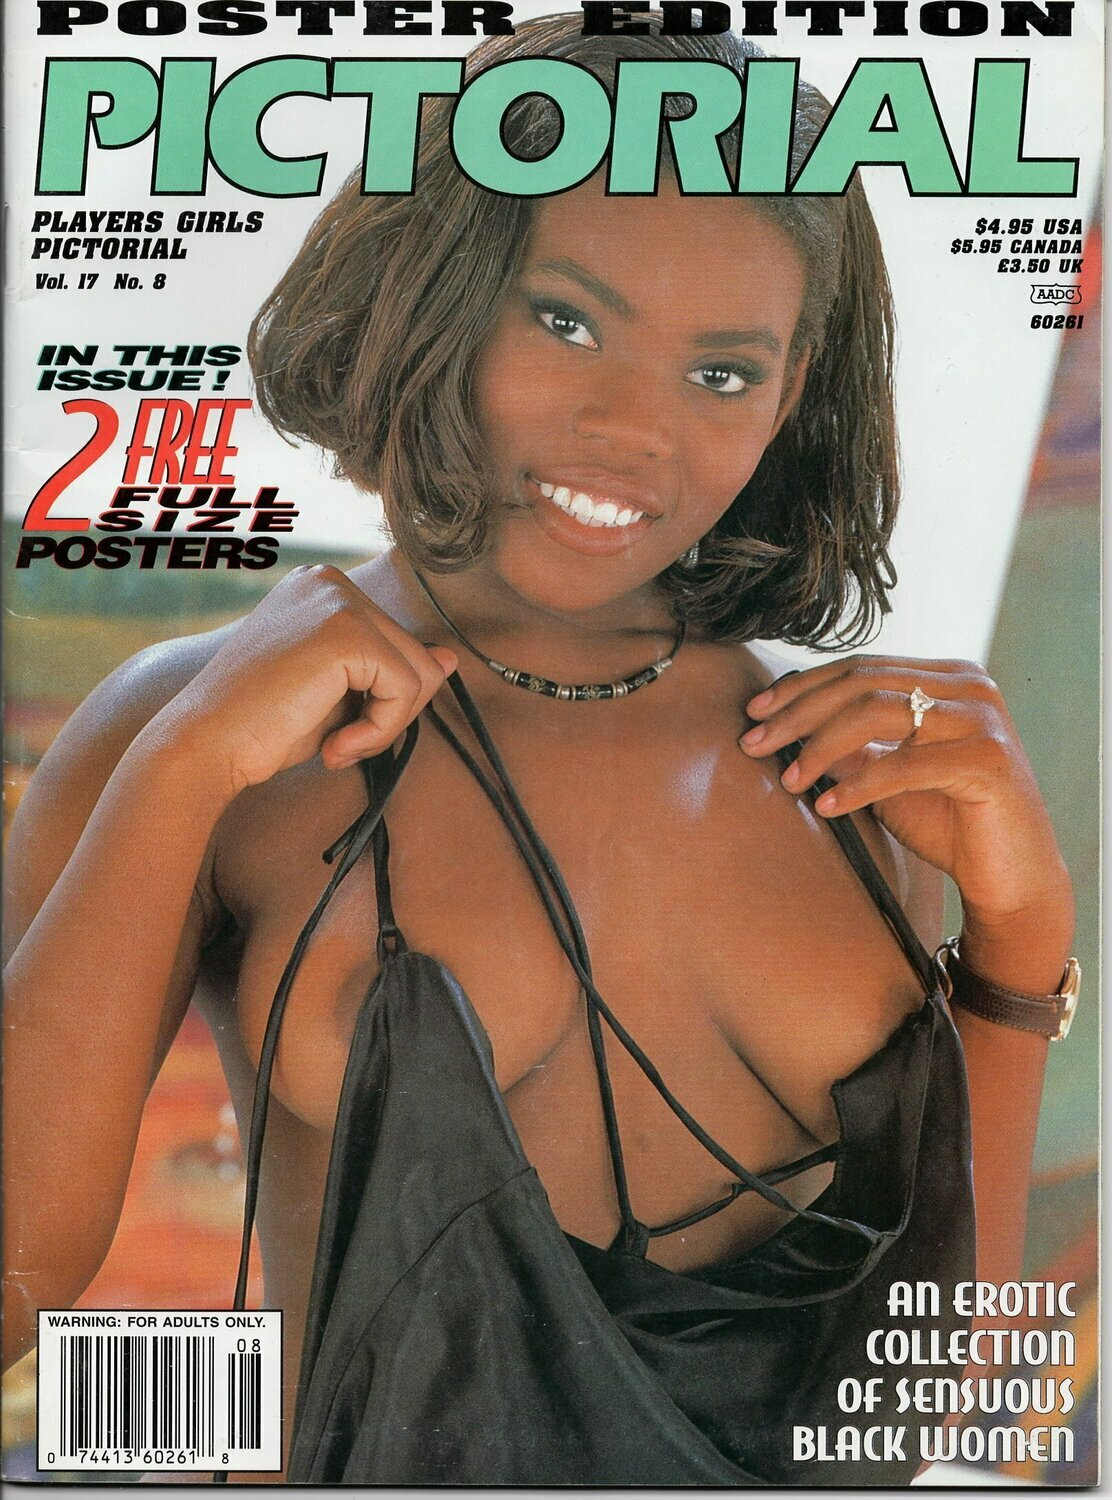 Players Girls Pictorial Magazine Vol 17 No 8 March 1997